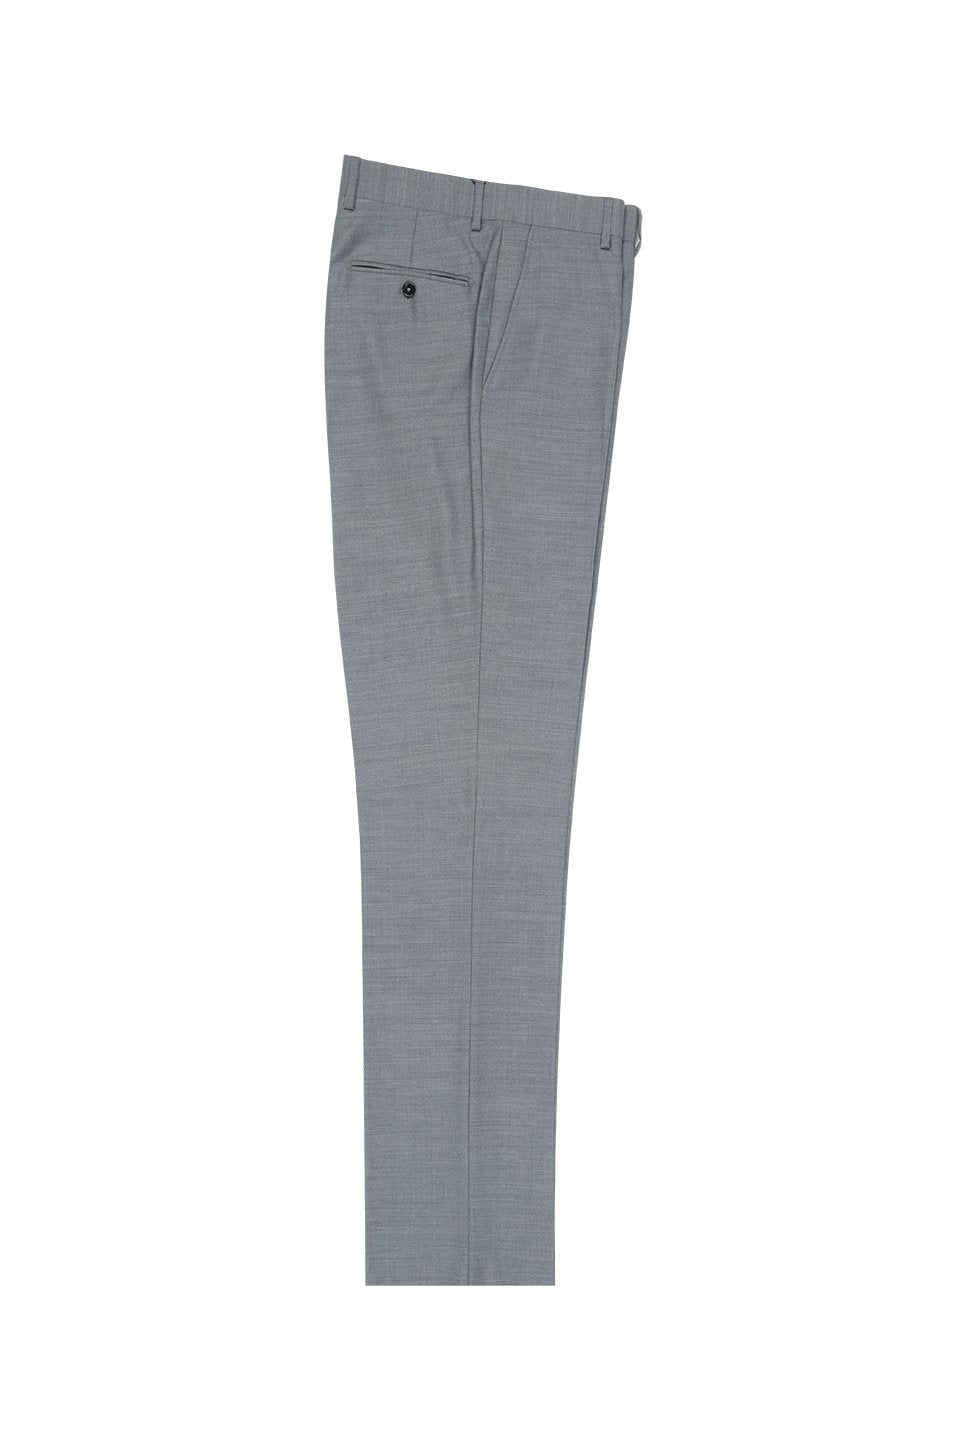 Tiglio Light Grey Solid Flat Front Dress Pants